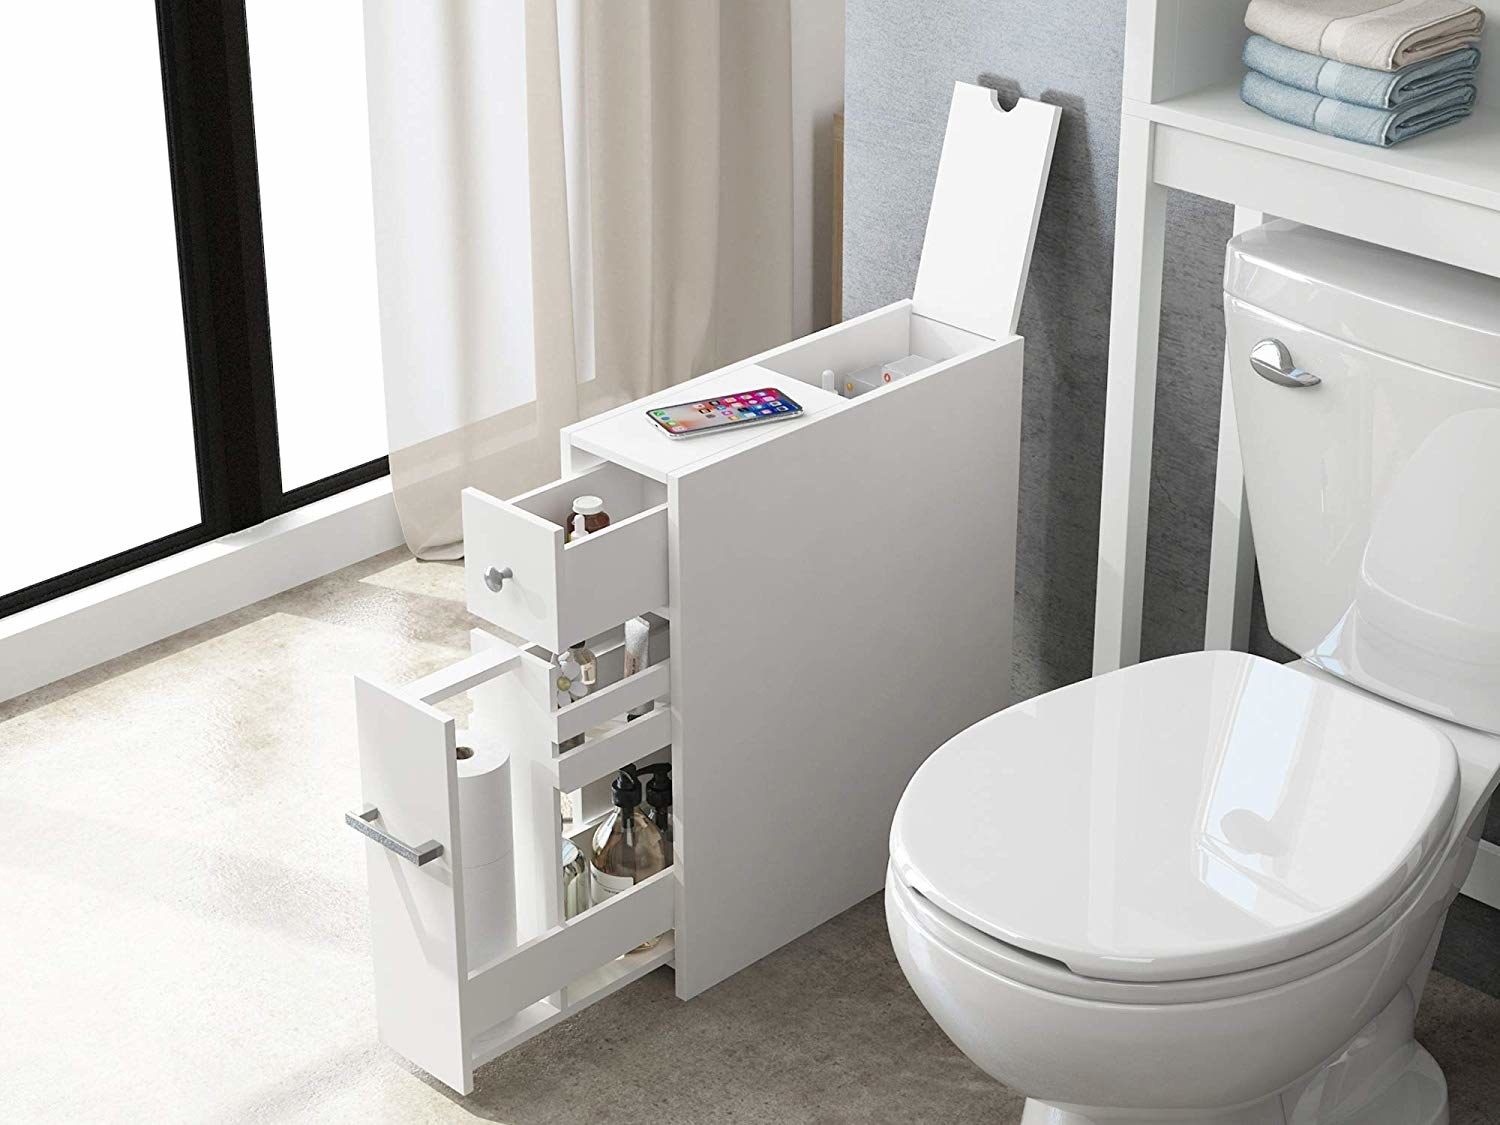 The cabinet with its drawers opened showing the variety of items it can store next to the toilet